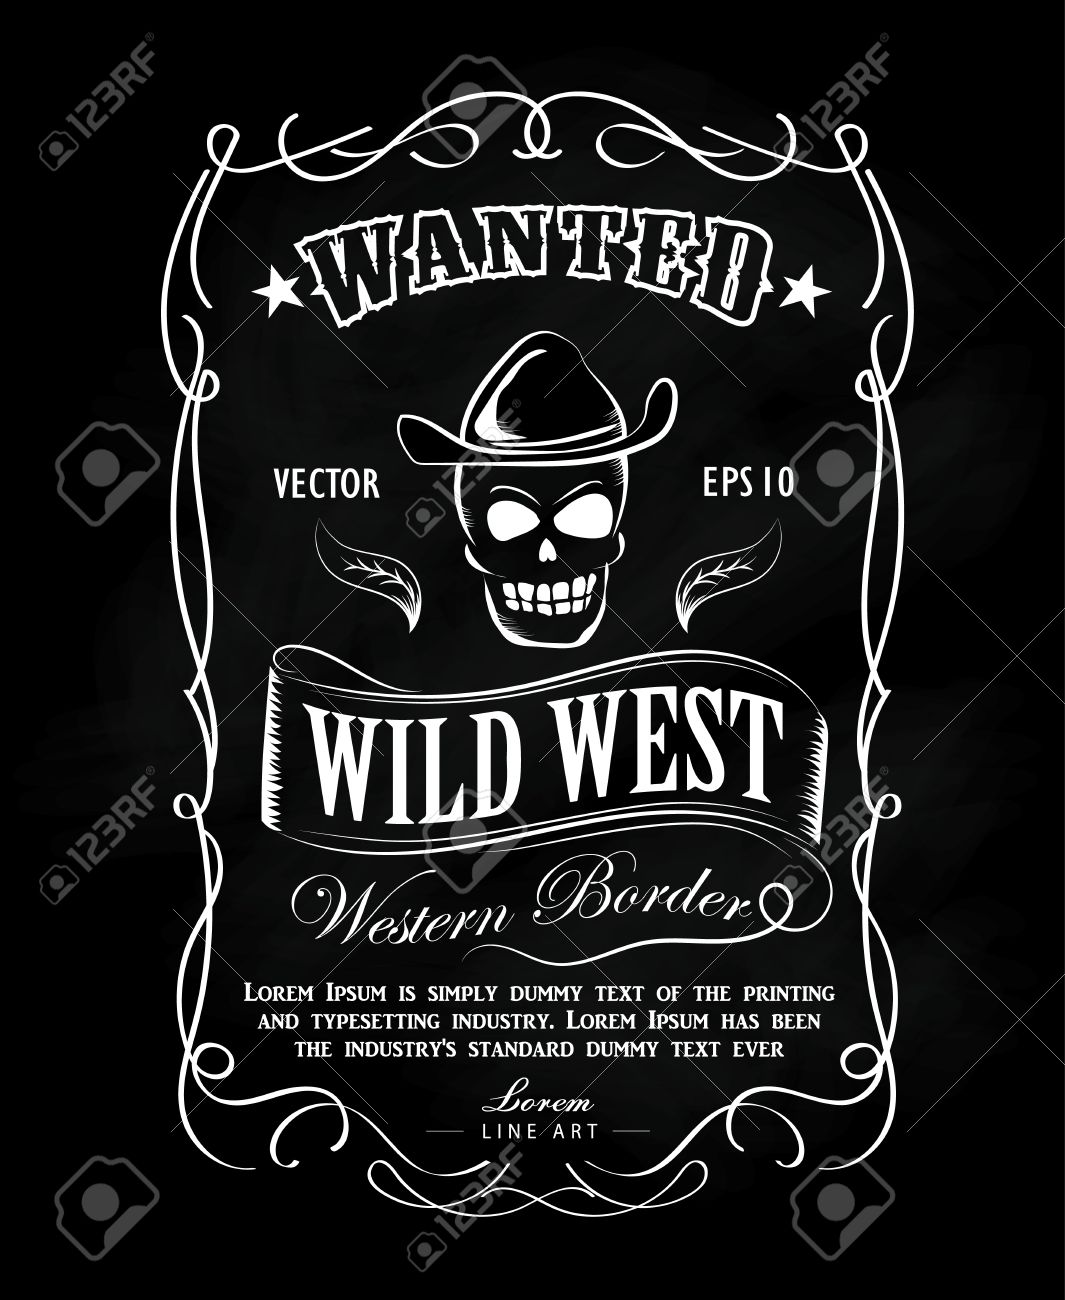 Vintage frame label blackboard hand drawn western border vector...